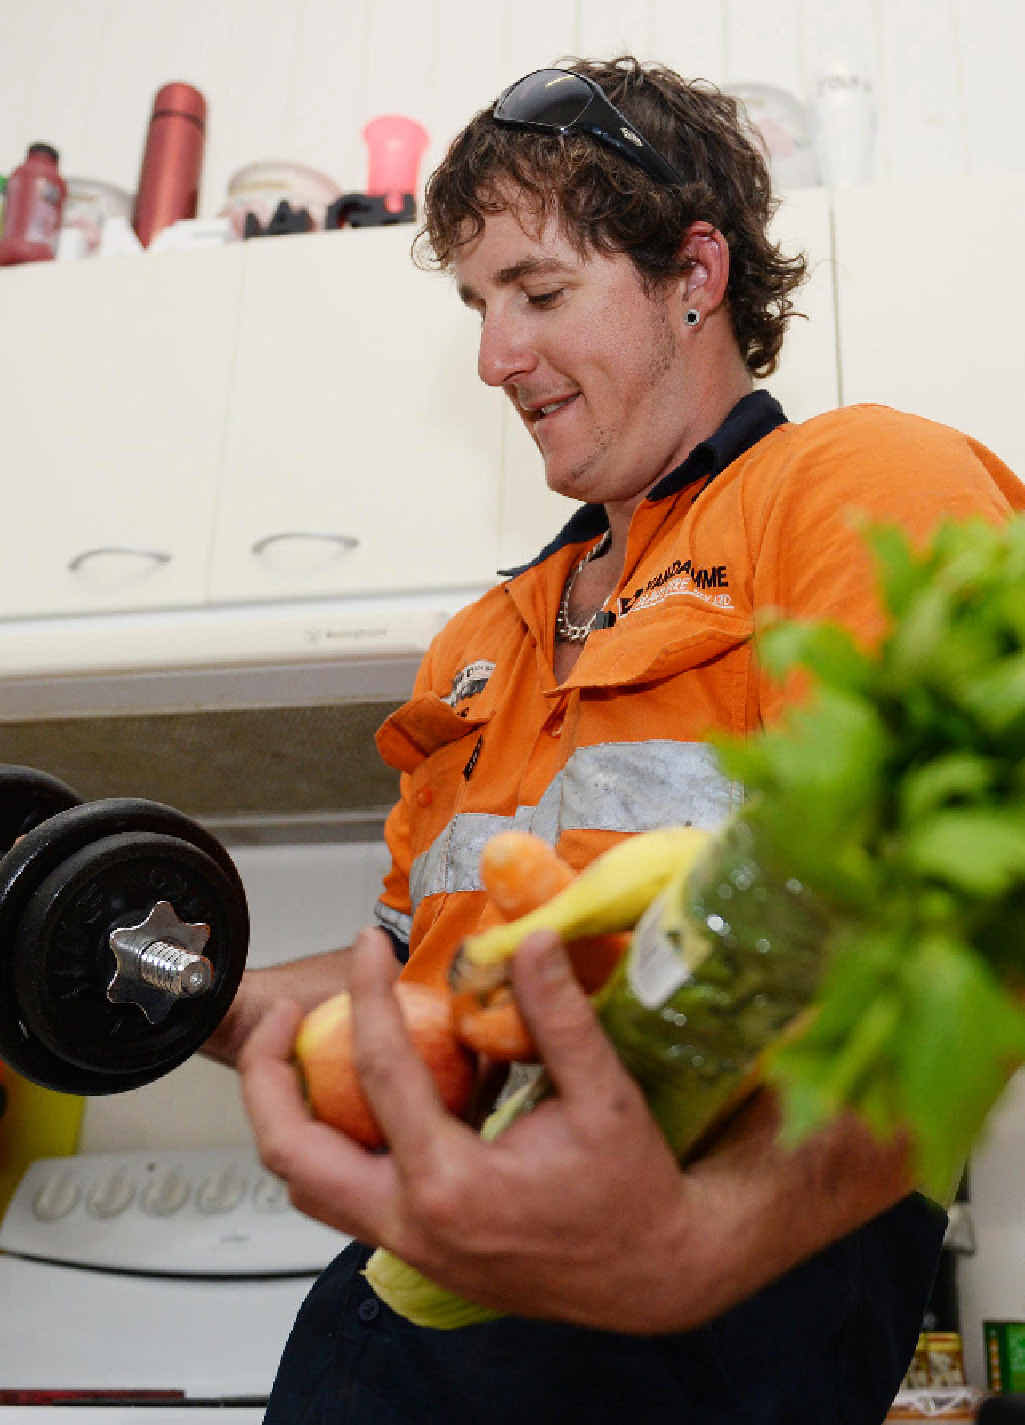 Mining operator Chris Benson looks to fresh fruit and vegetables in a bid to find a healthy balance.